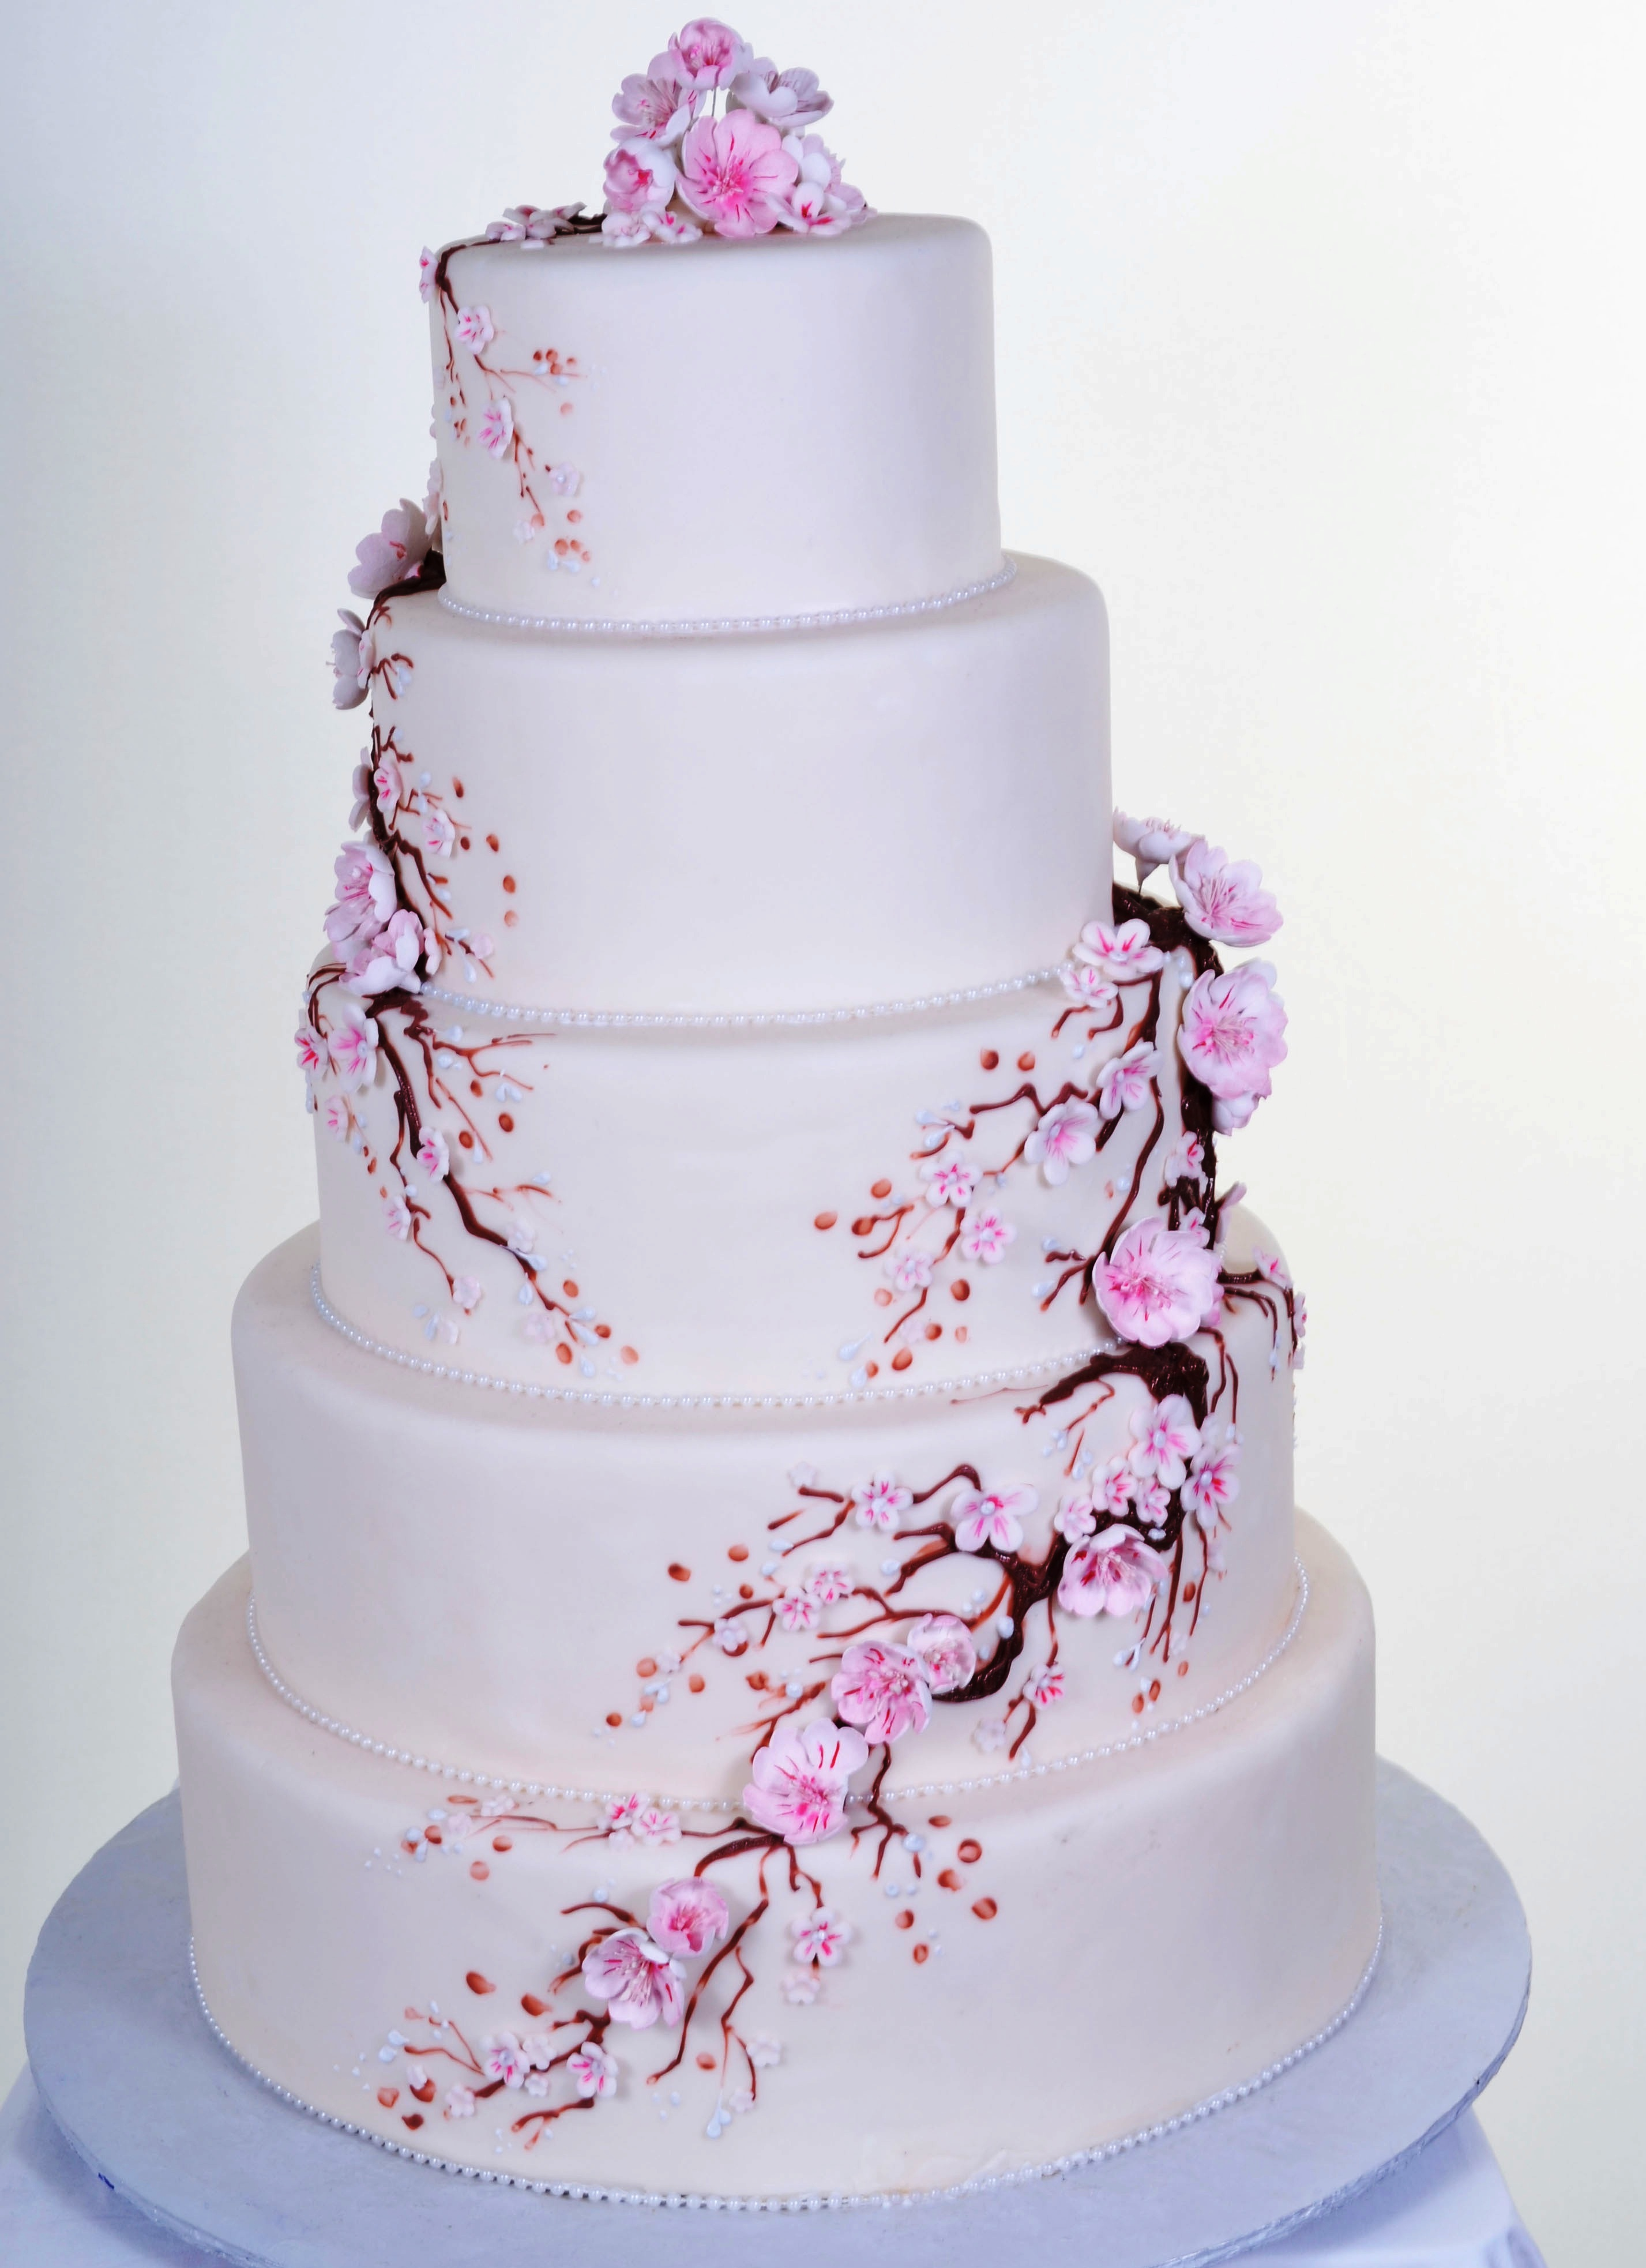 Pastry Palace Las Vegas Cake #602 - Cherry Blossoms V